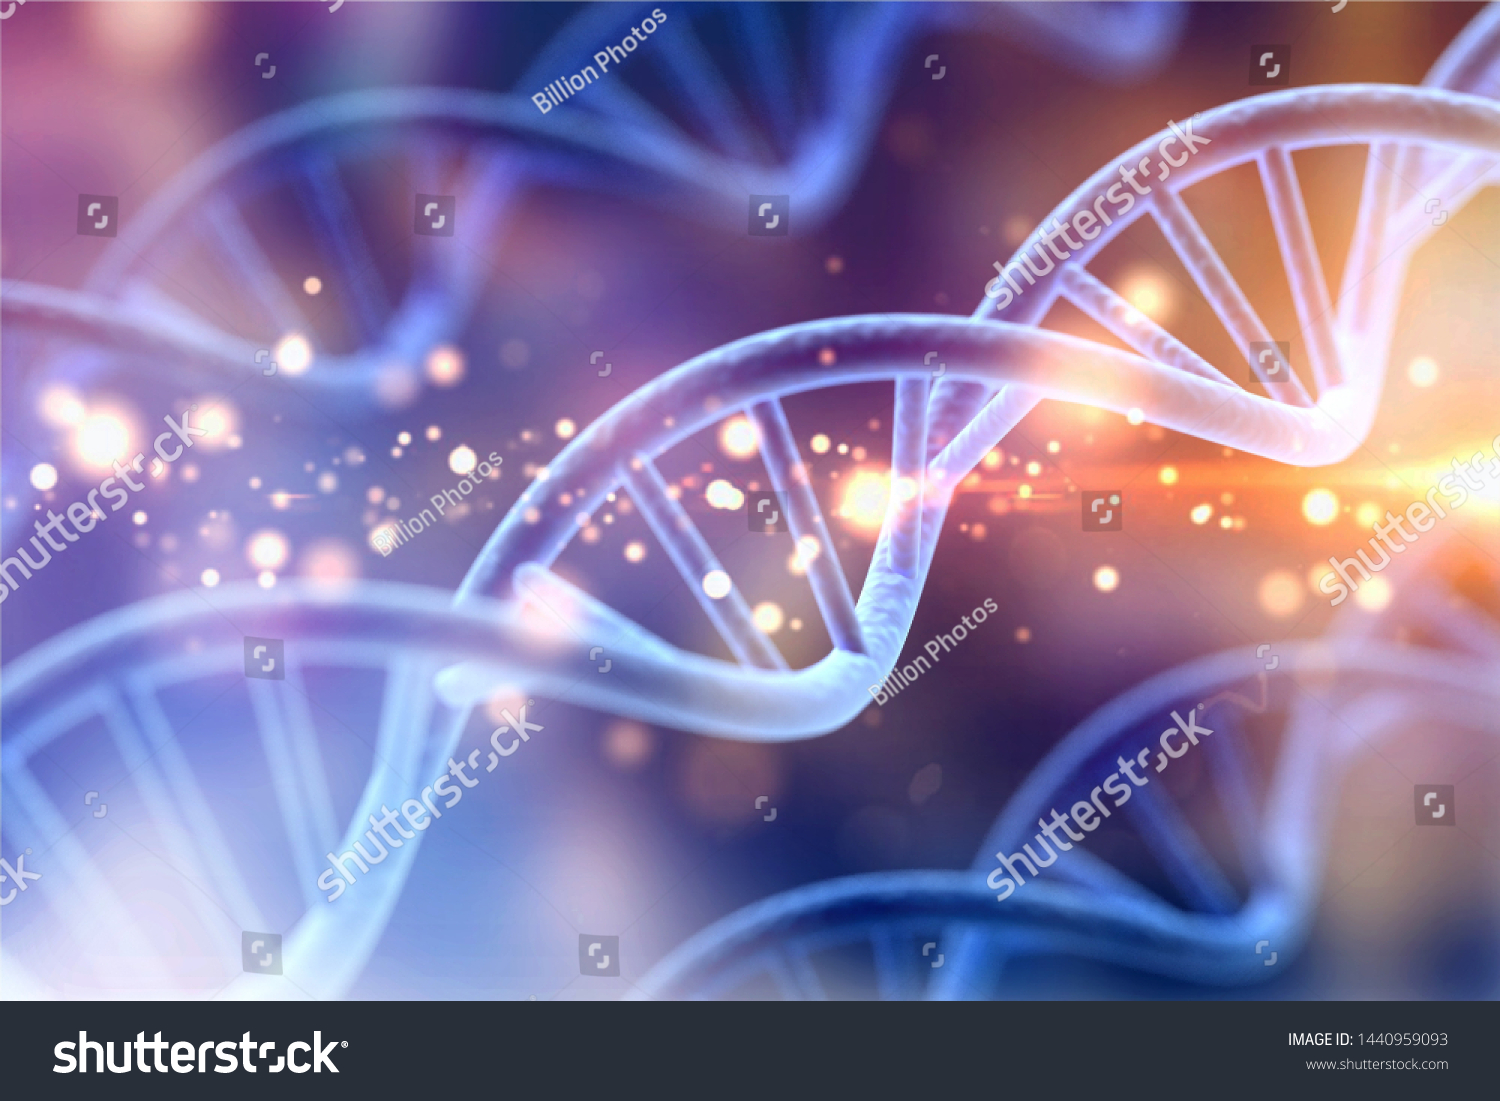 Science Biotechnology DNA illustration and abstract illustration #1440959093